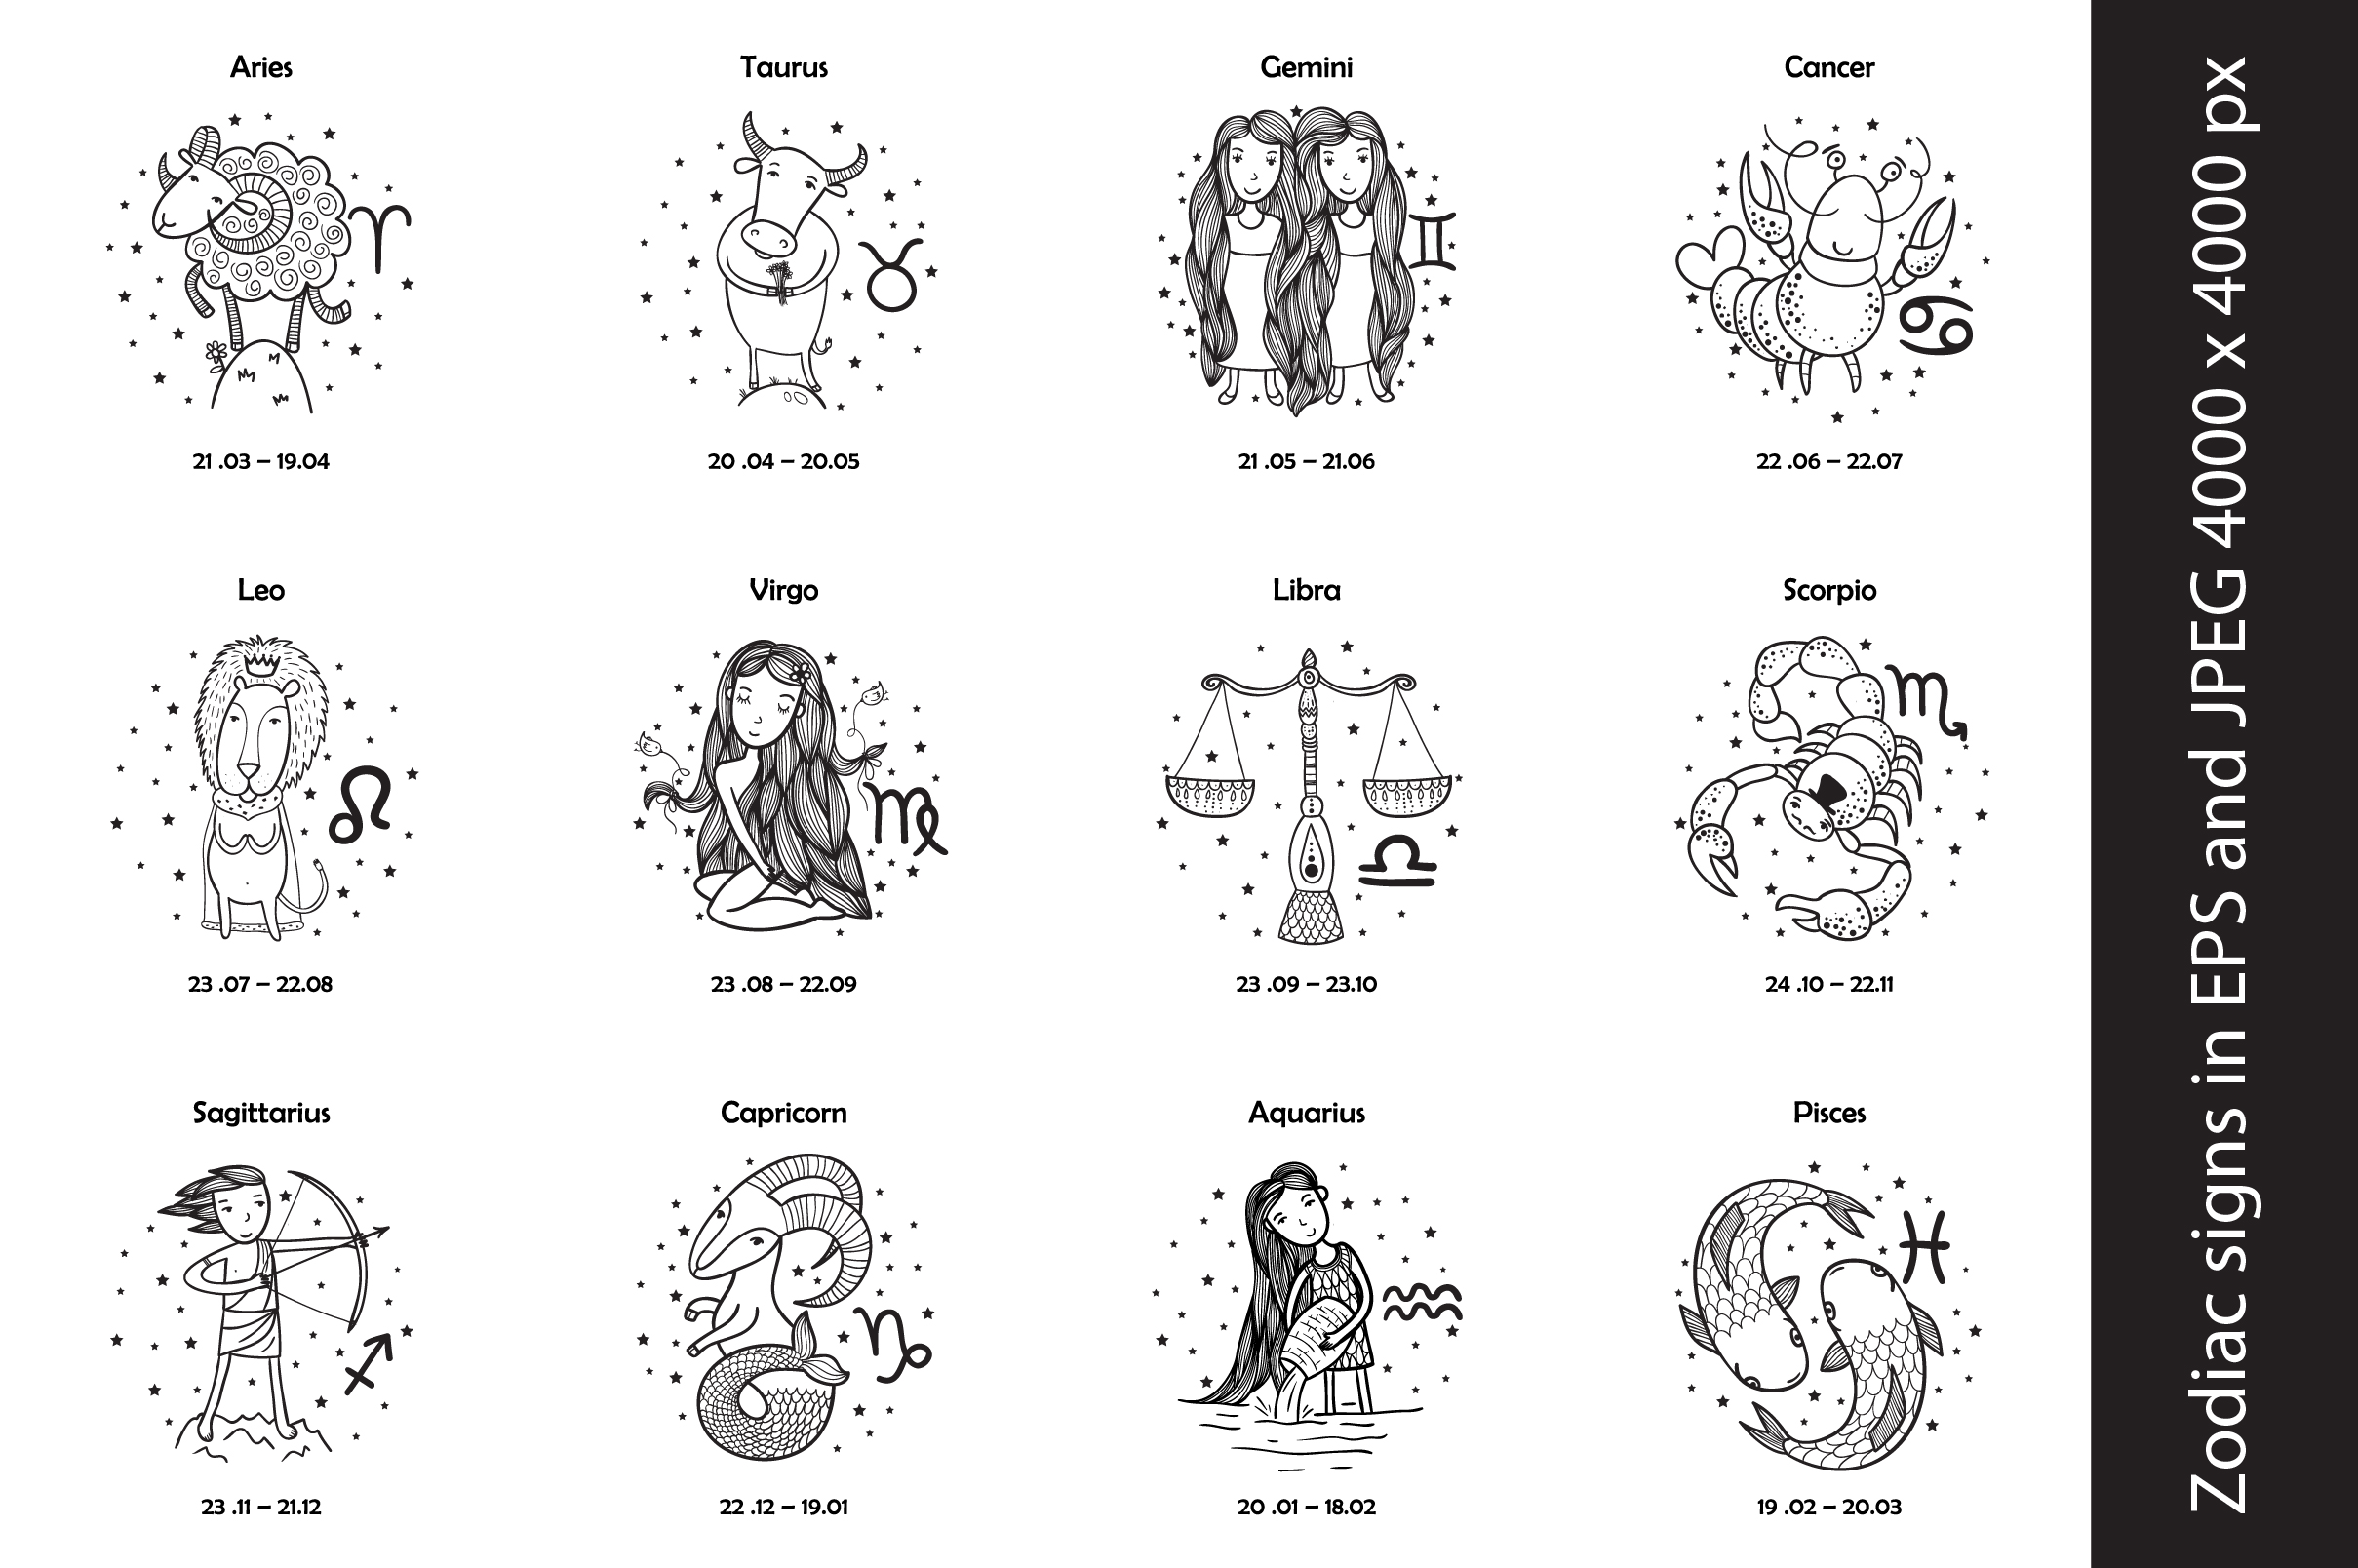 zodiac signs in eps10 and jpeg 4000x